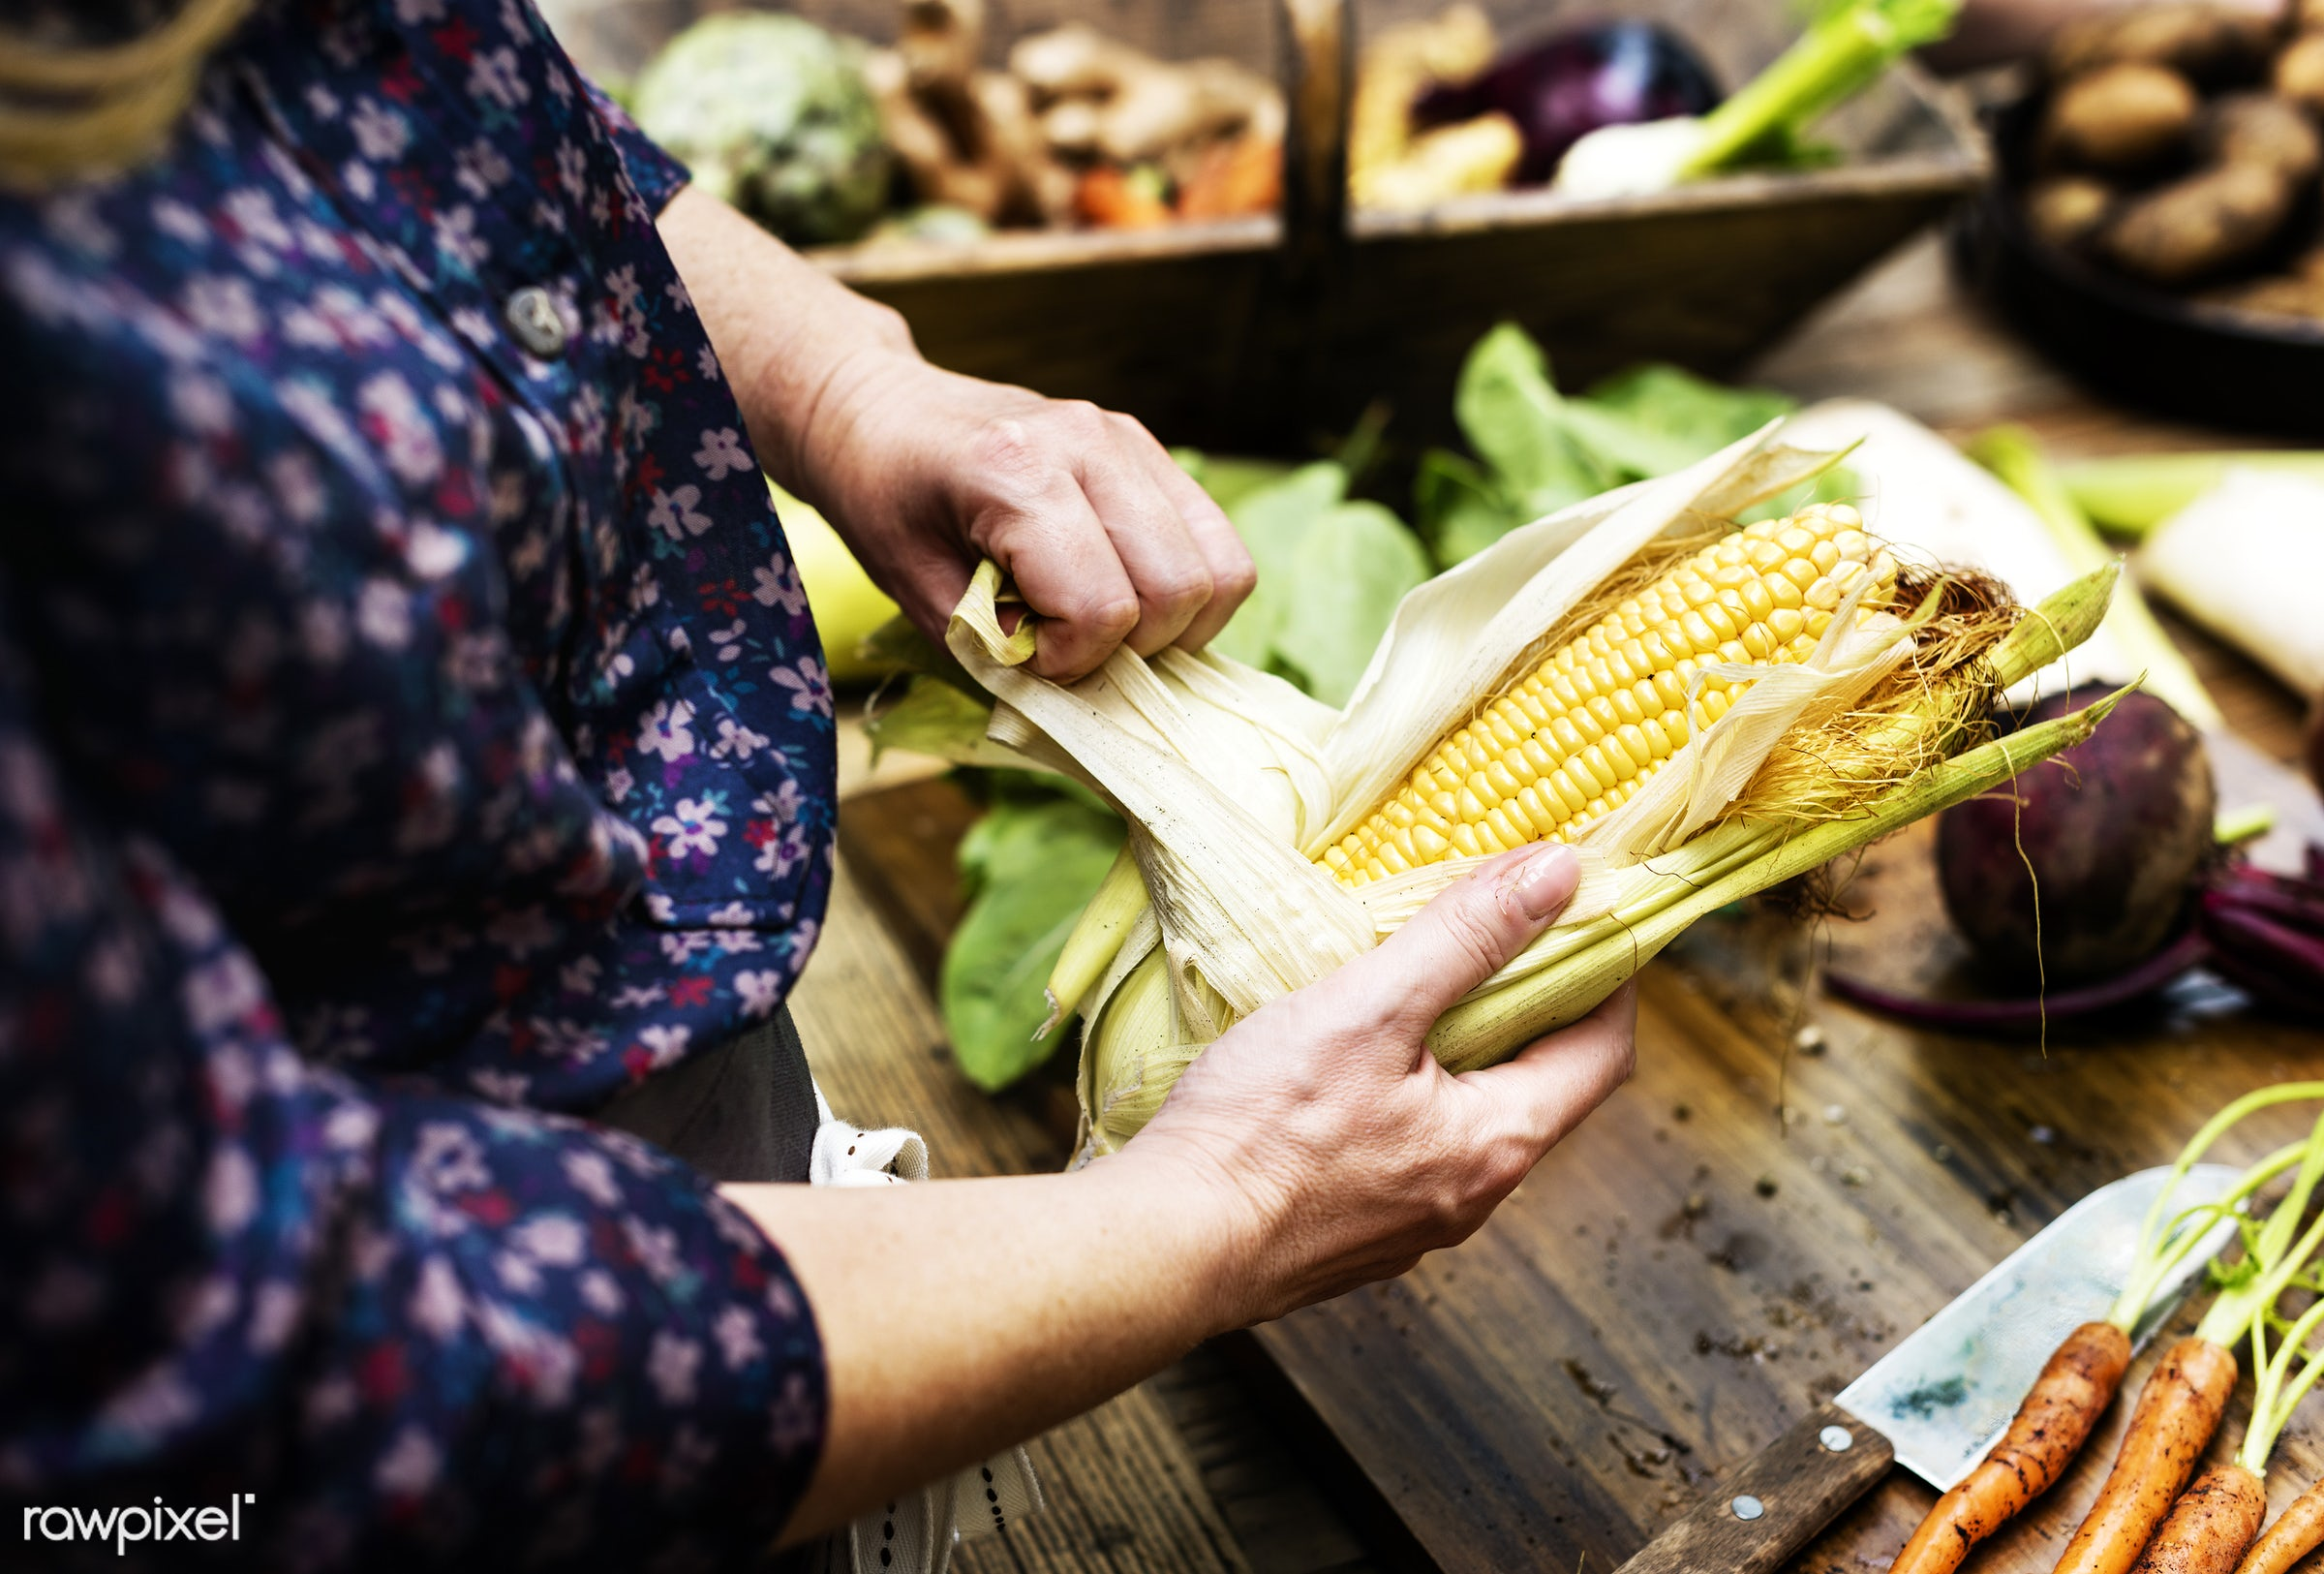 raw, diverse, buy, maize, corn, farm, ingredients, farmer, nature, hands, fresh, choosing, products, closeup, agriculture,...